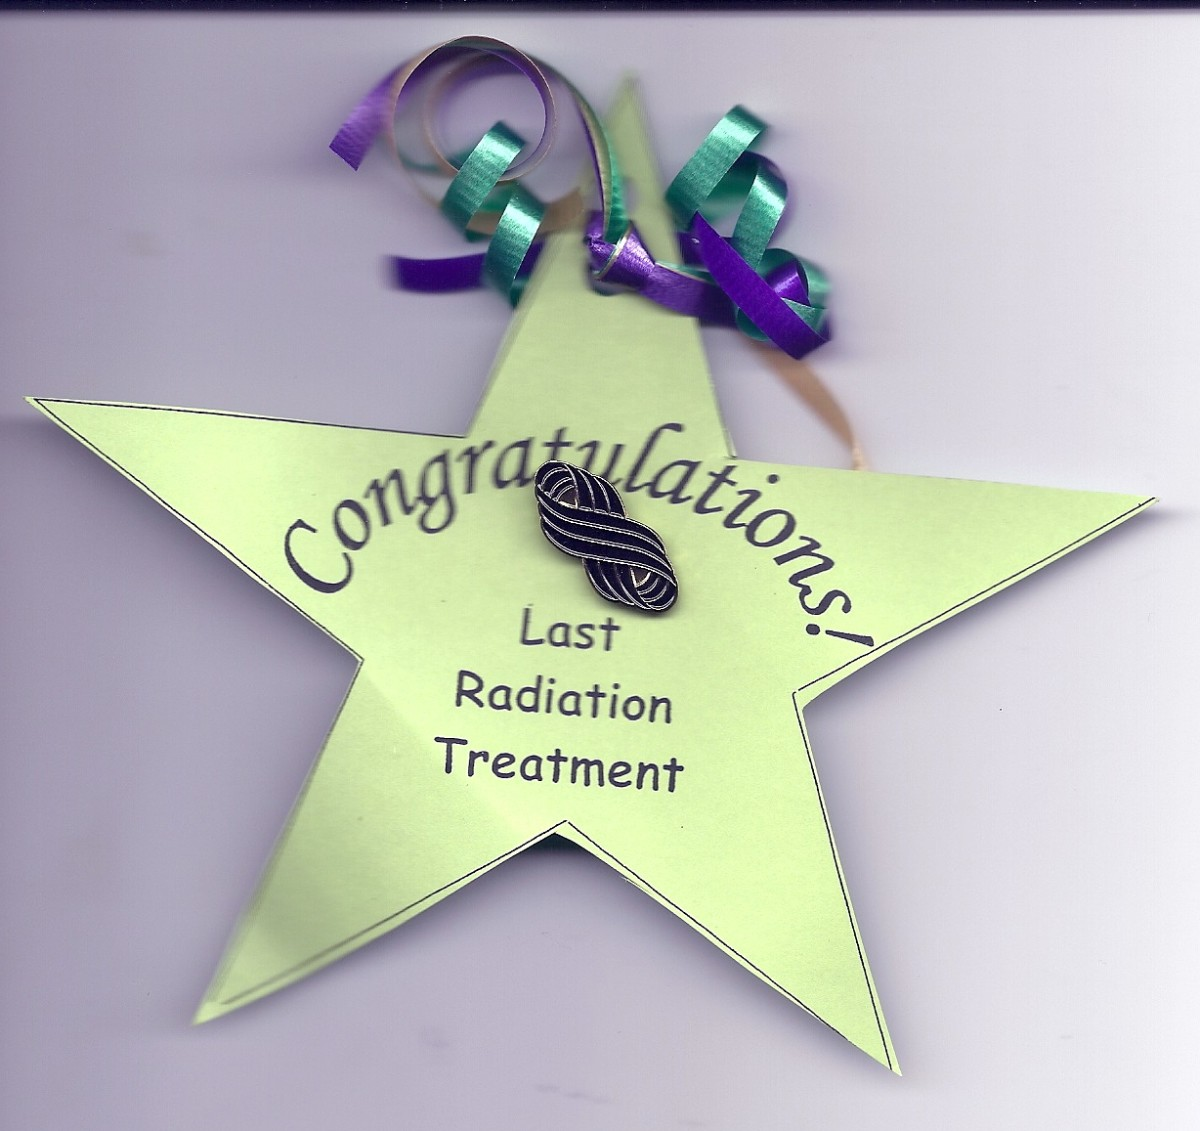 Radiation Star received after seven weeks and one day of radiation was completed!